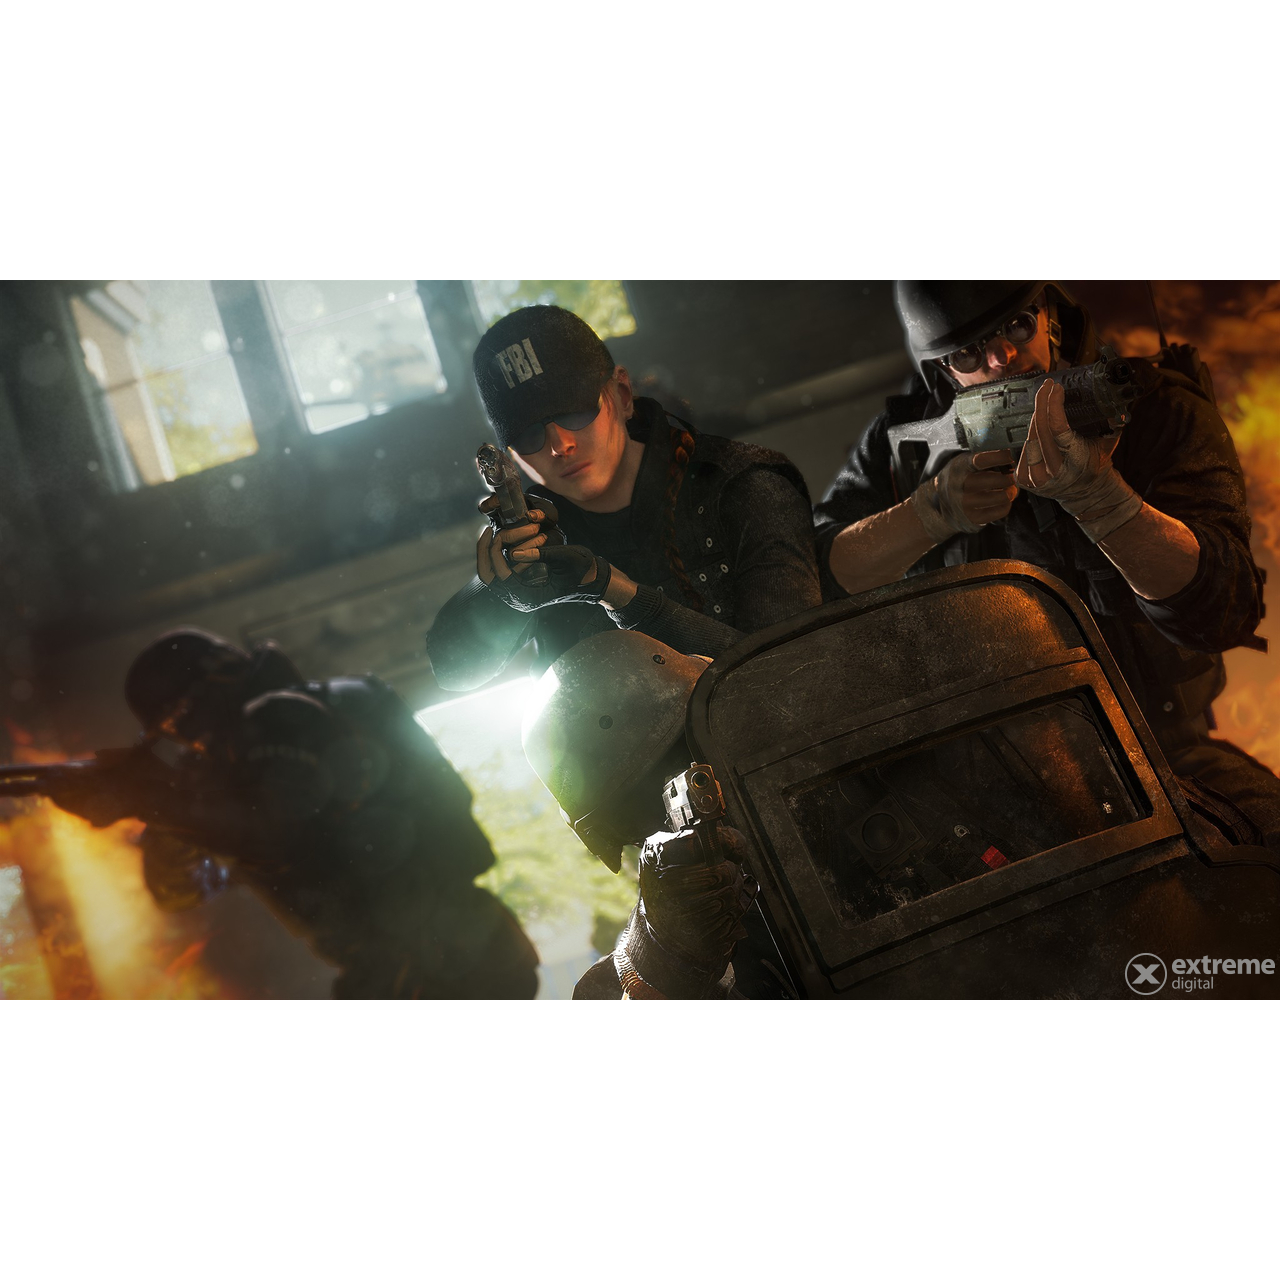 xbox-one-1tb-tom-clancy-s-rainbow-six-siege-gepcsomag_52c71cd4.jpg